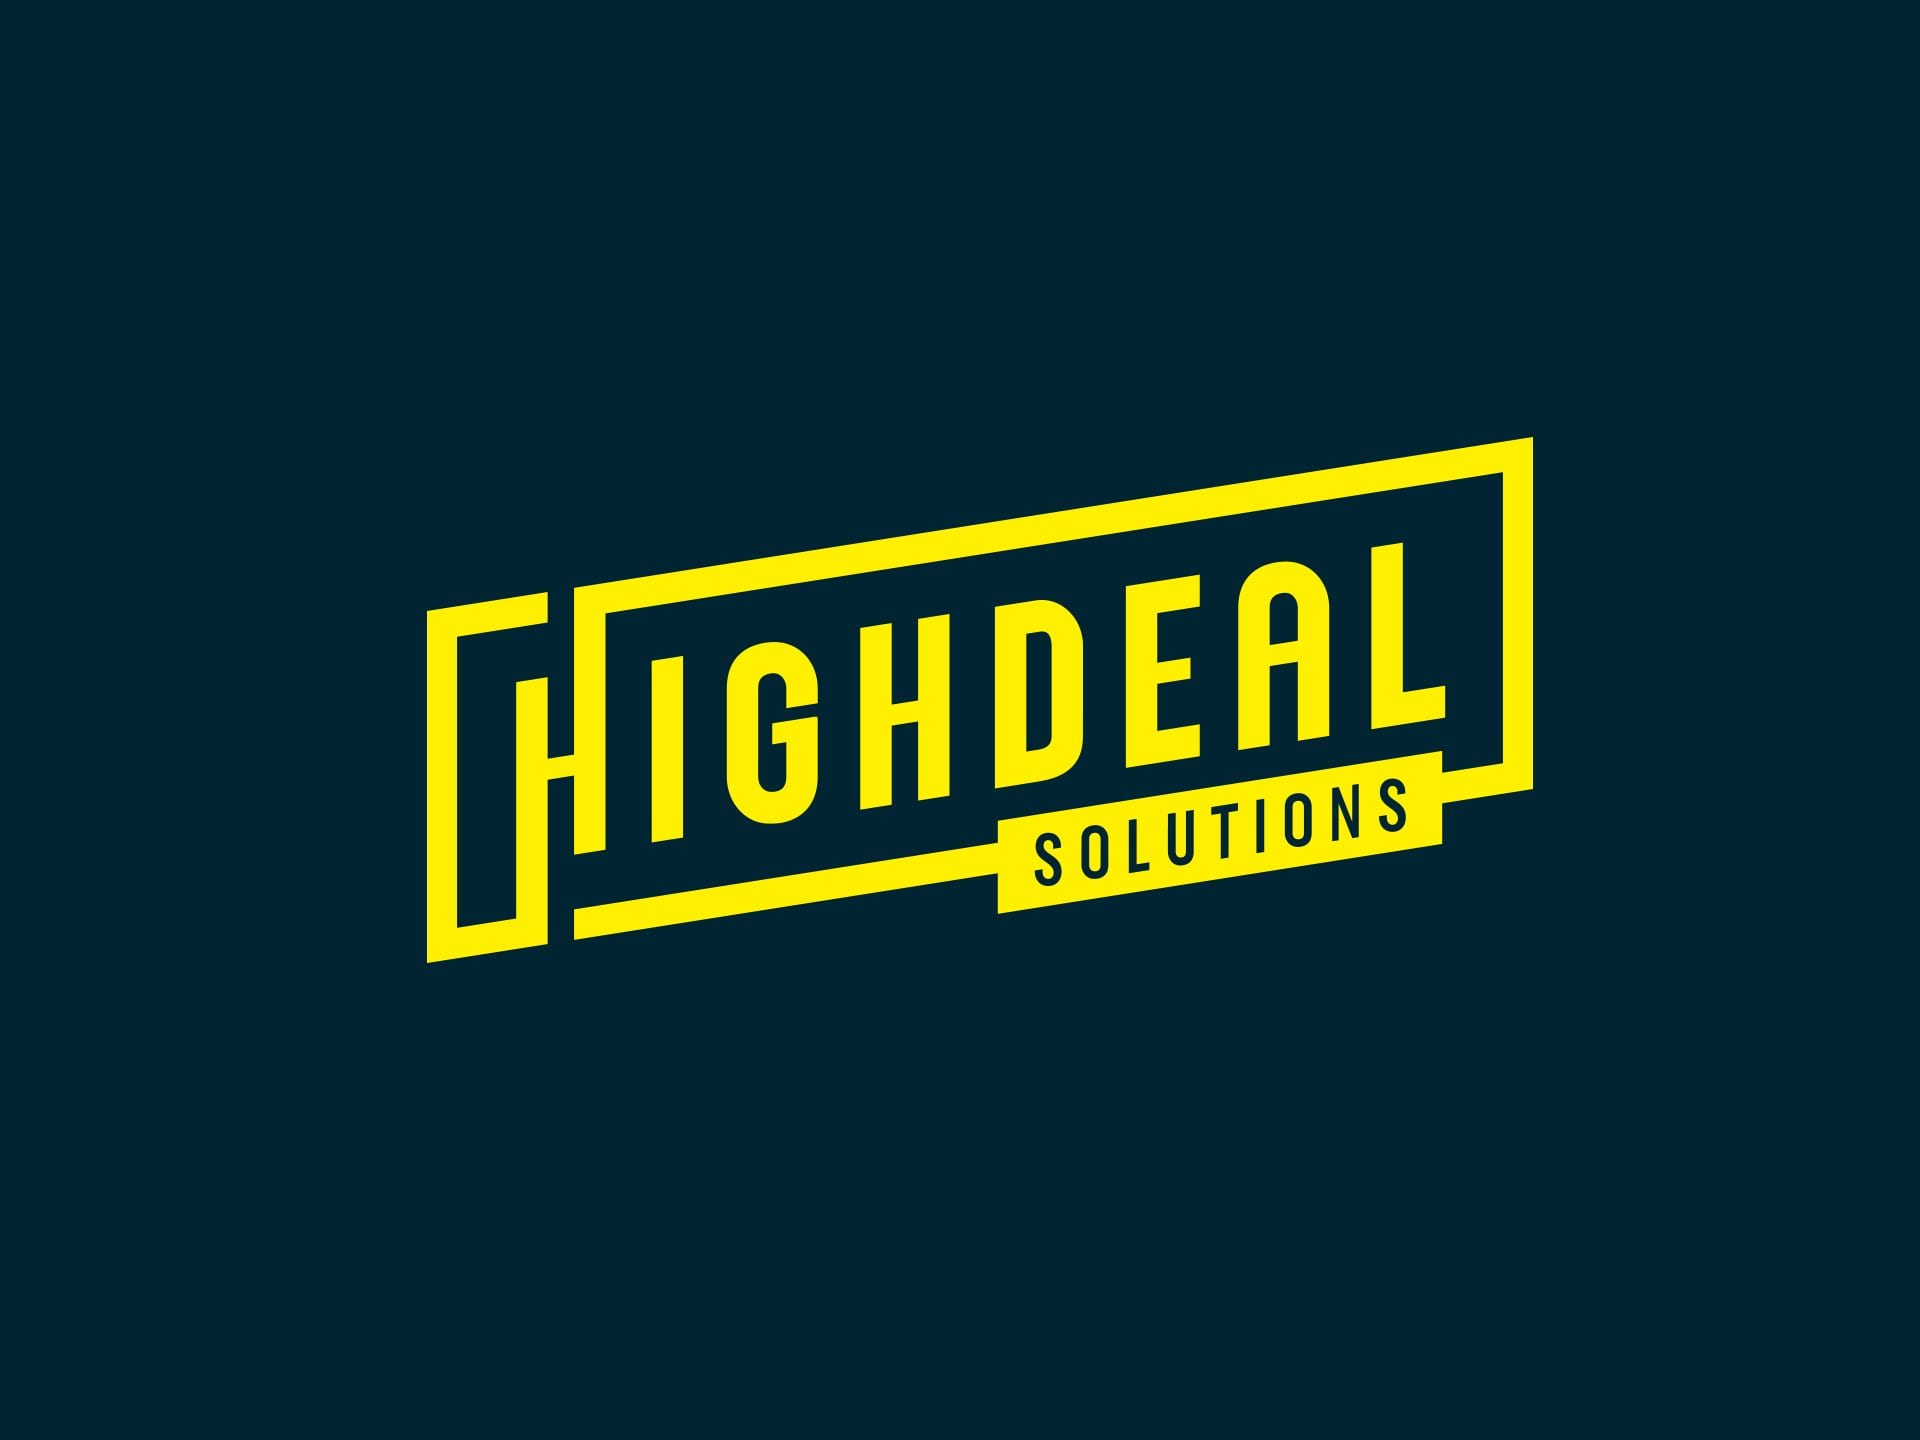 Y5 Creative Case Studies Emerging Markets Highdeal Solutions Logo 1